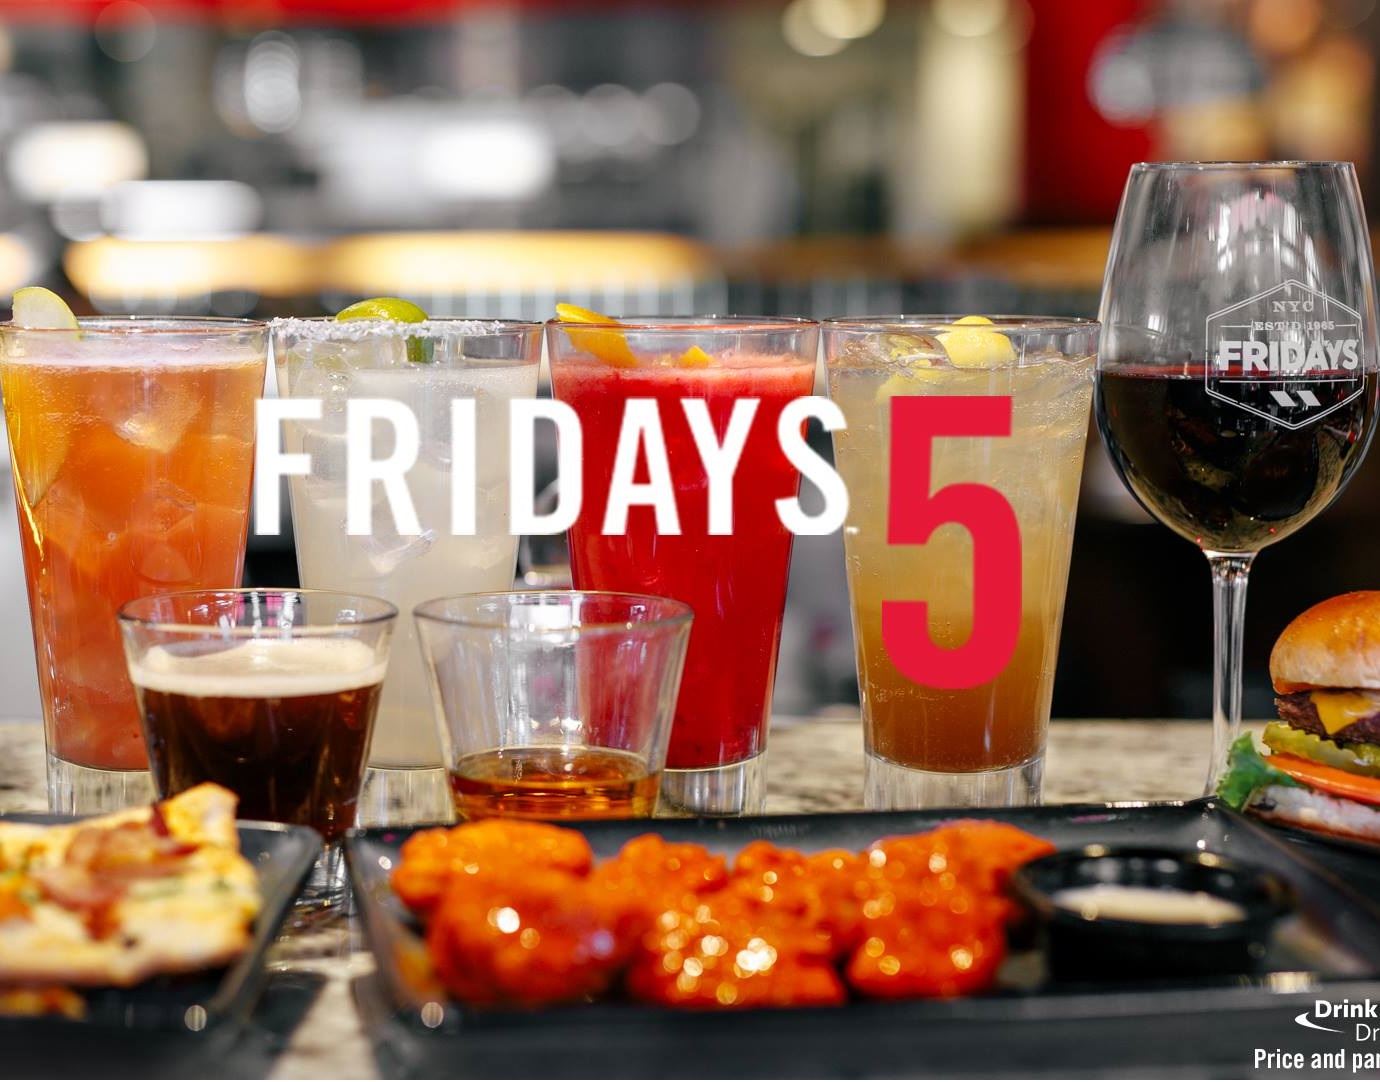 picture about Tgi Fridays Printable Coupons named TGI Fridays $5 Offers EatDrinkDeals